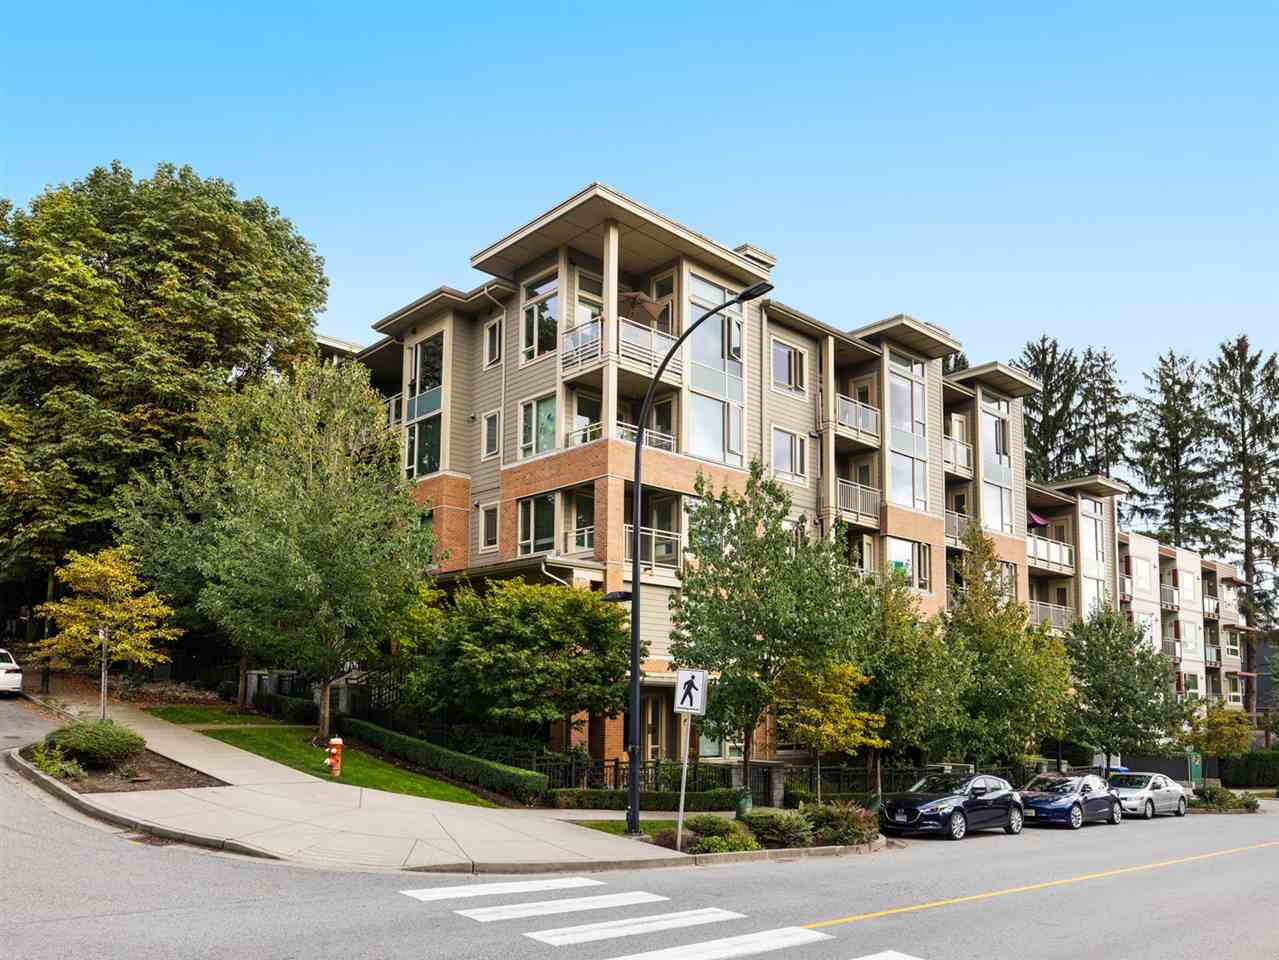 102 159 W 22ND STREET - Central Lonsdale Apartment/Condo for sale, 1 Bedroom (R2502448) - #15